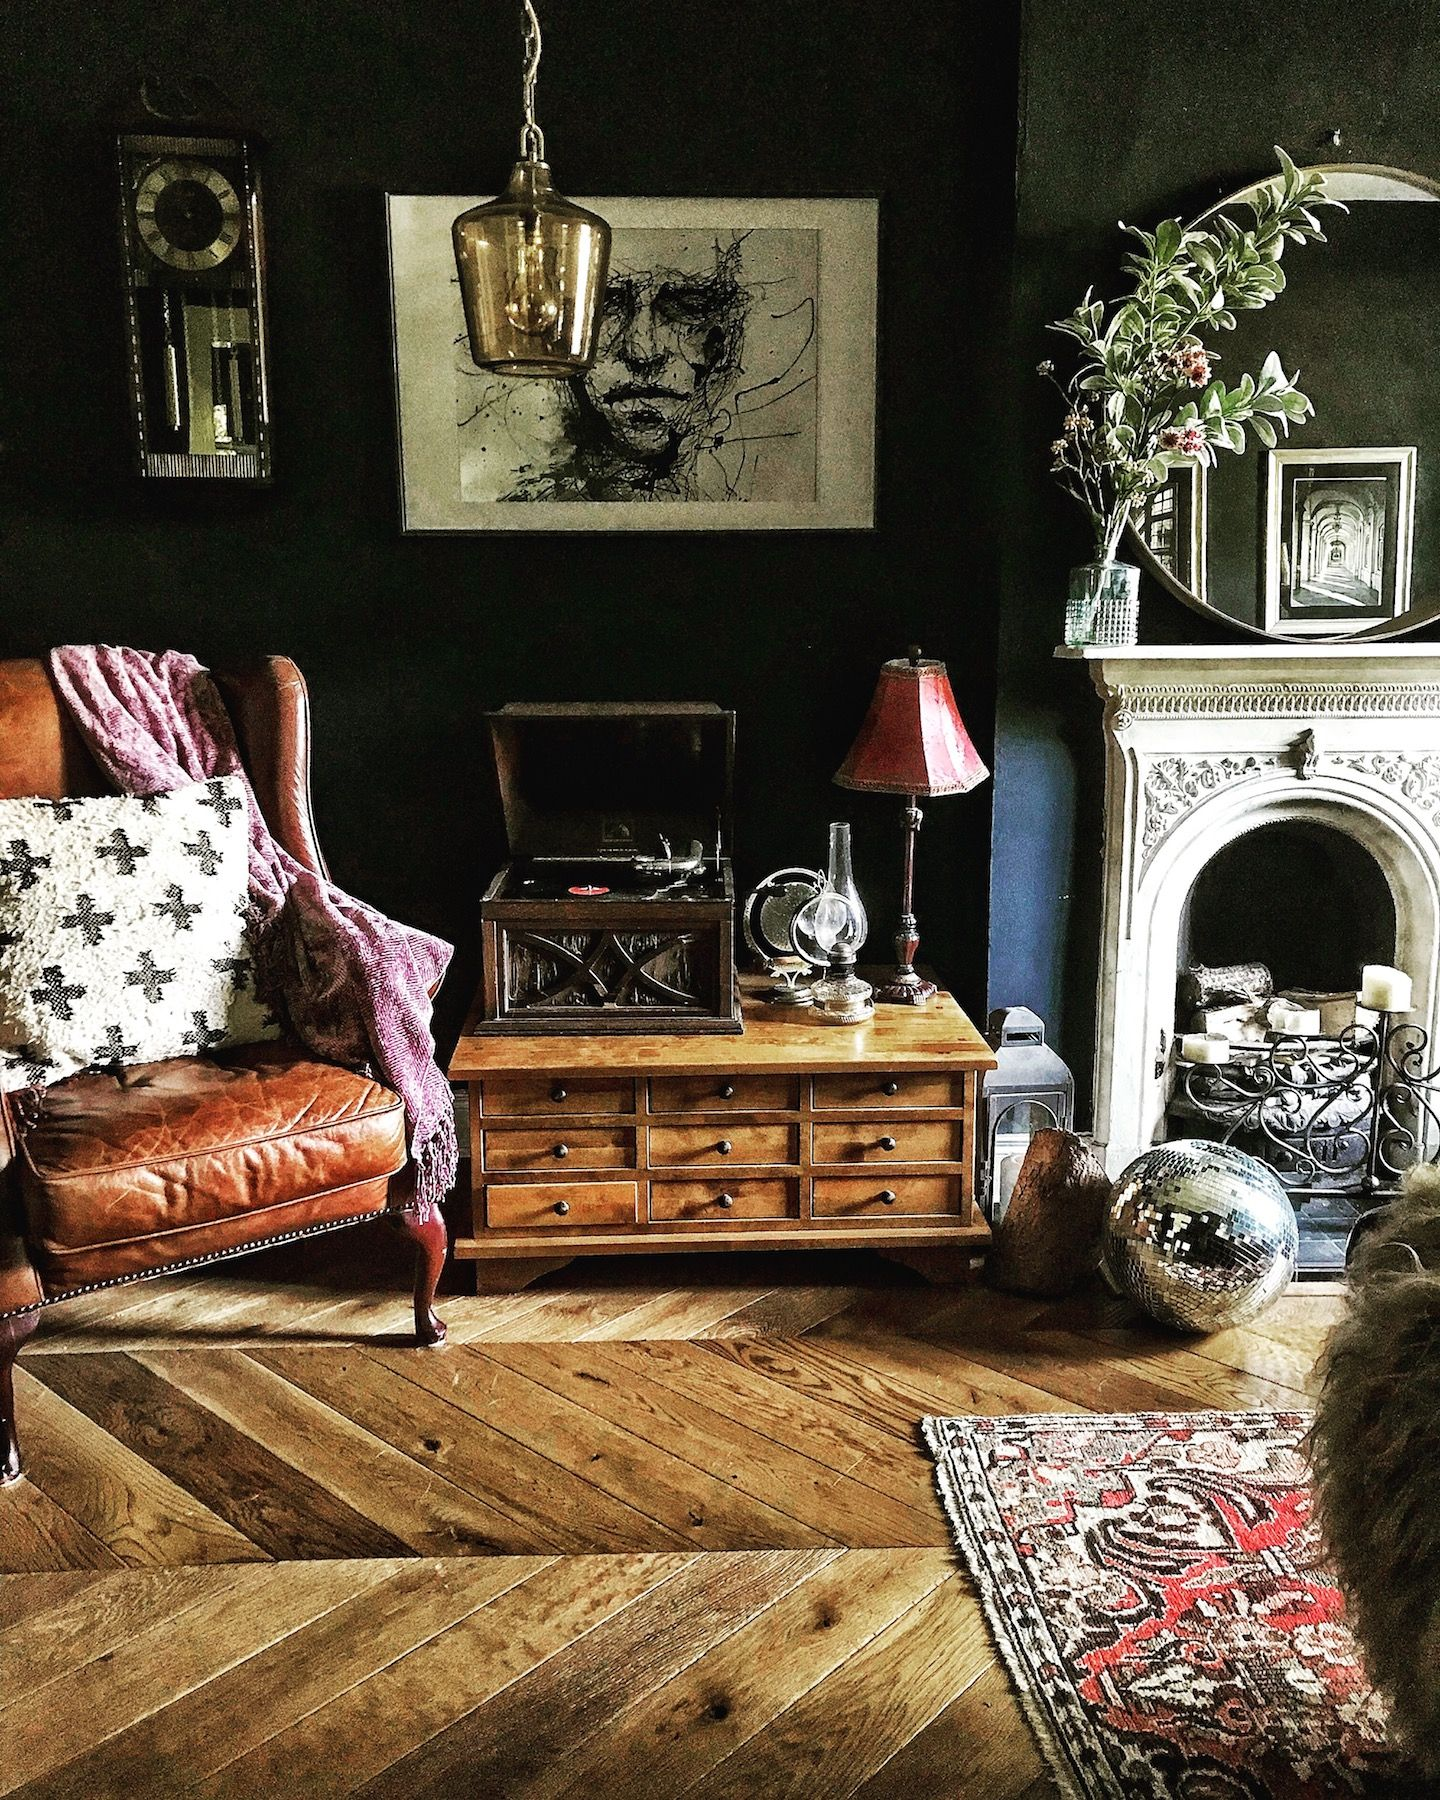 Living Room Suites Northern Ireland Interior Design Kerala Style A Dark Cozy Cottage In The Countryside Sponge